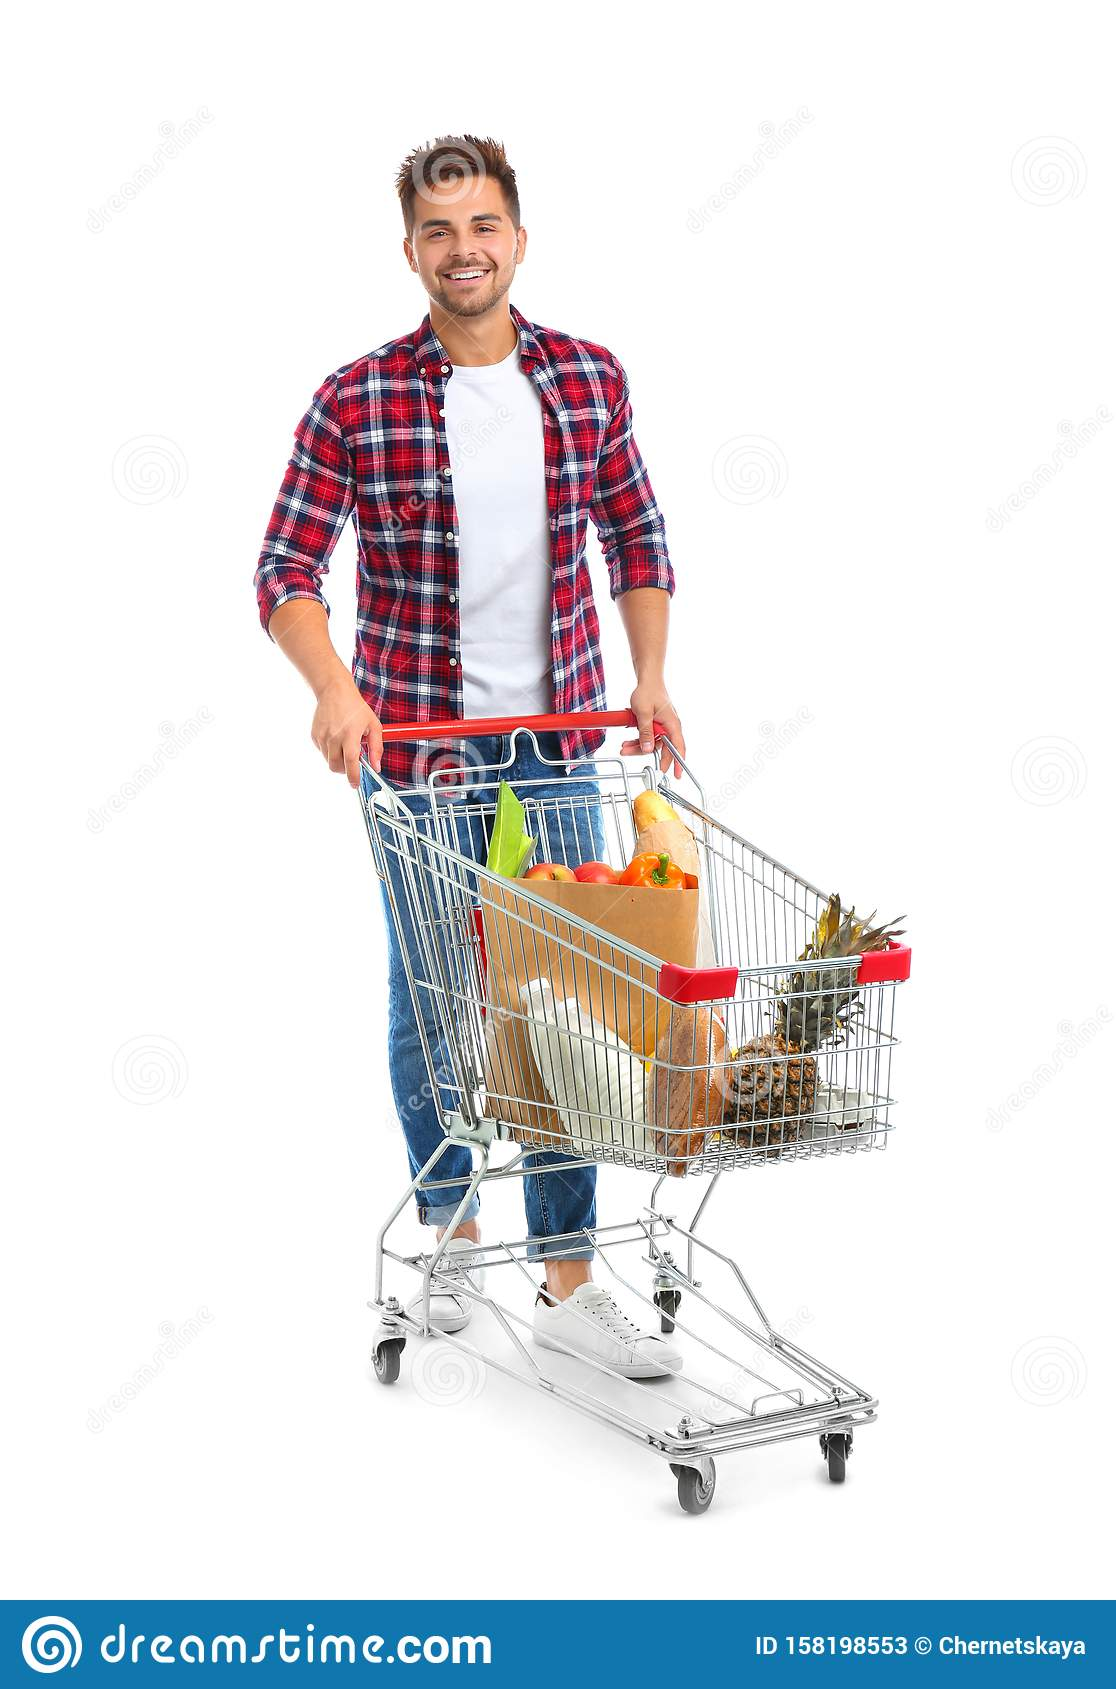 Young man with full shopping cart on background